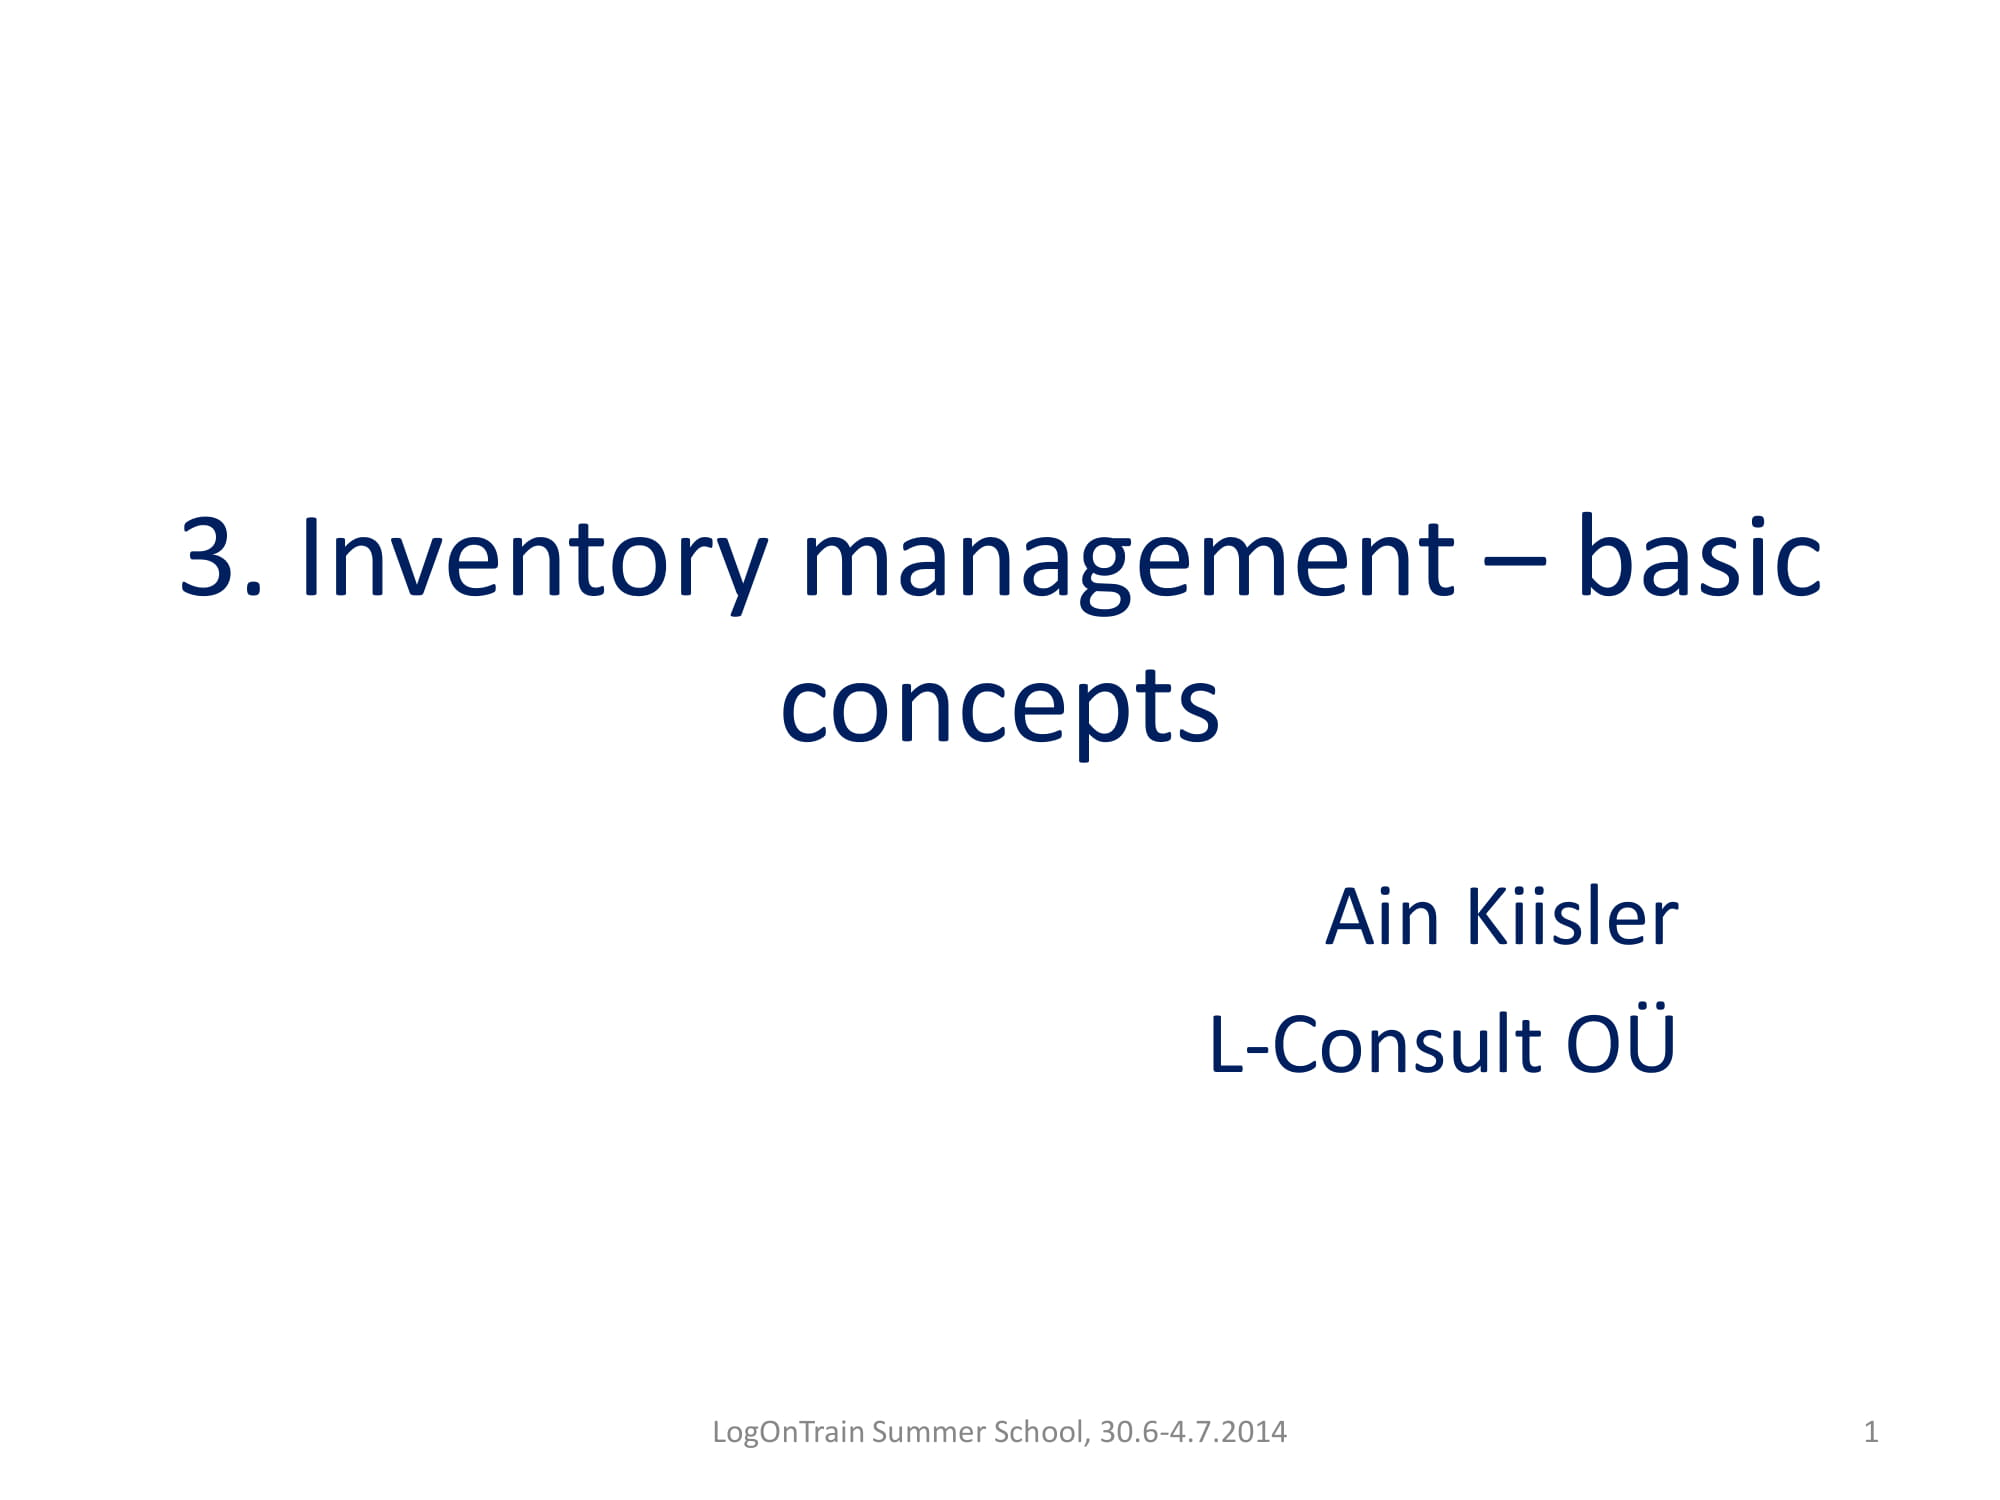 inventory management basic concepts for database development example 01